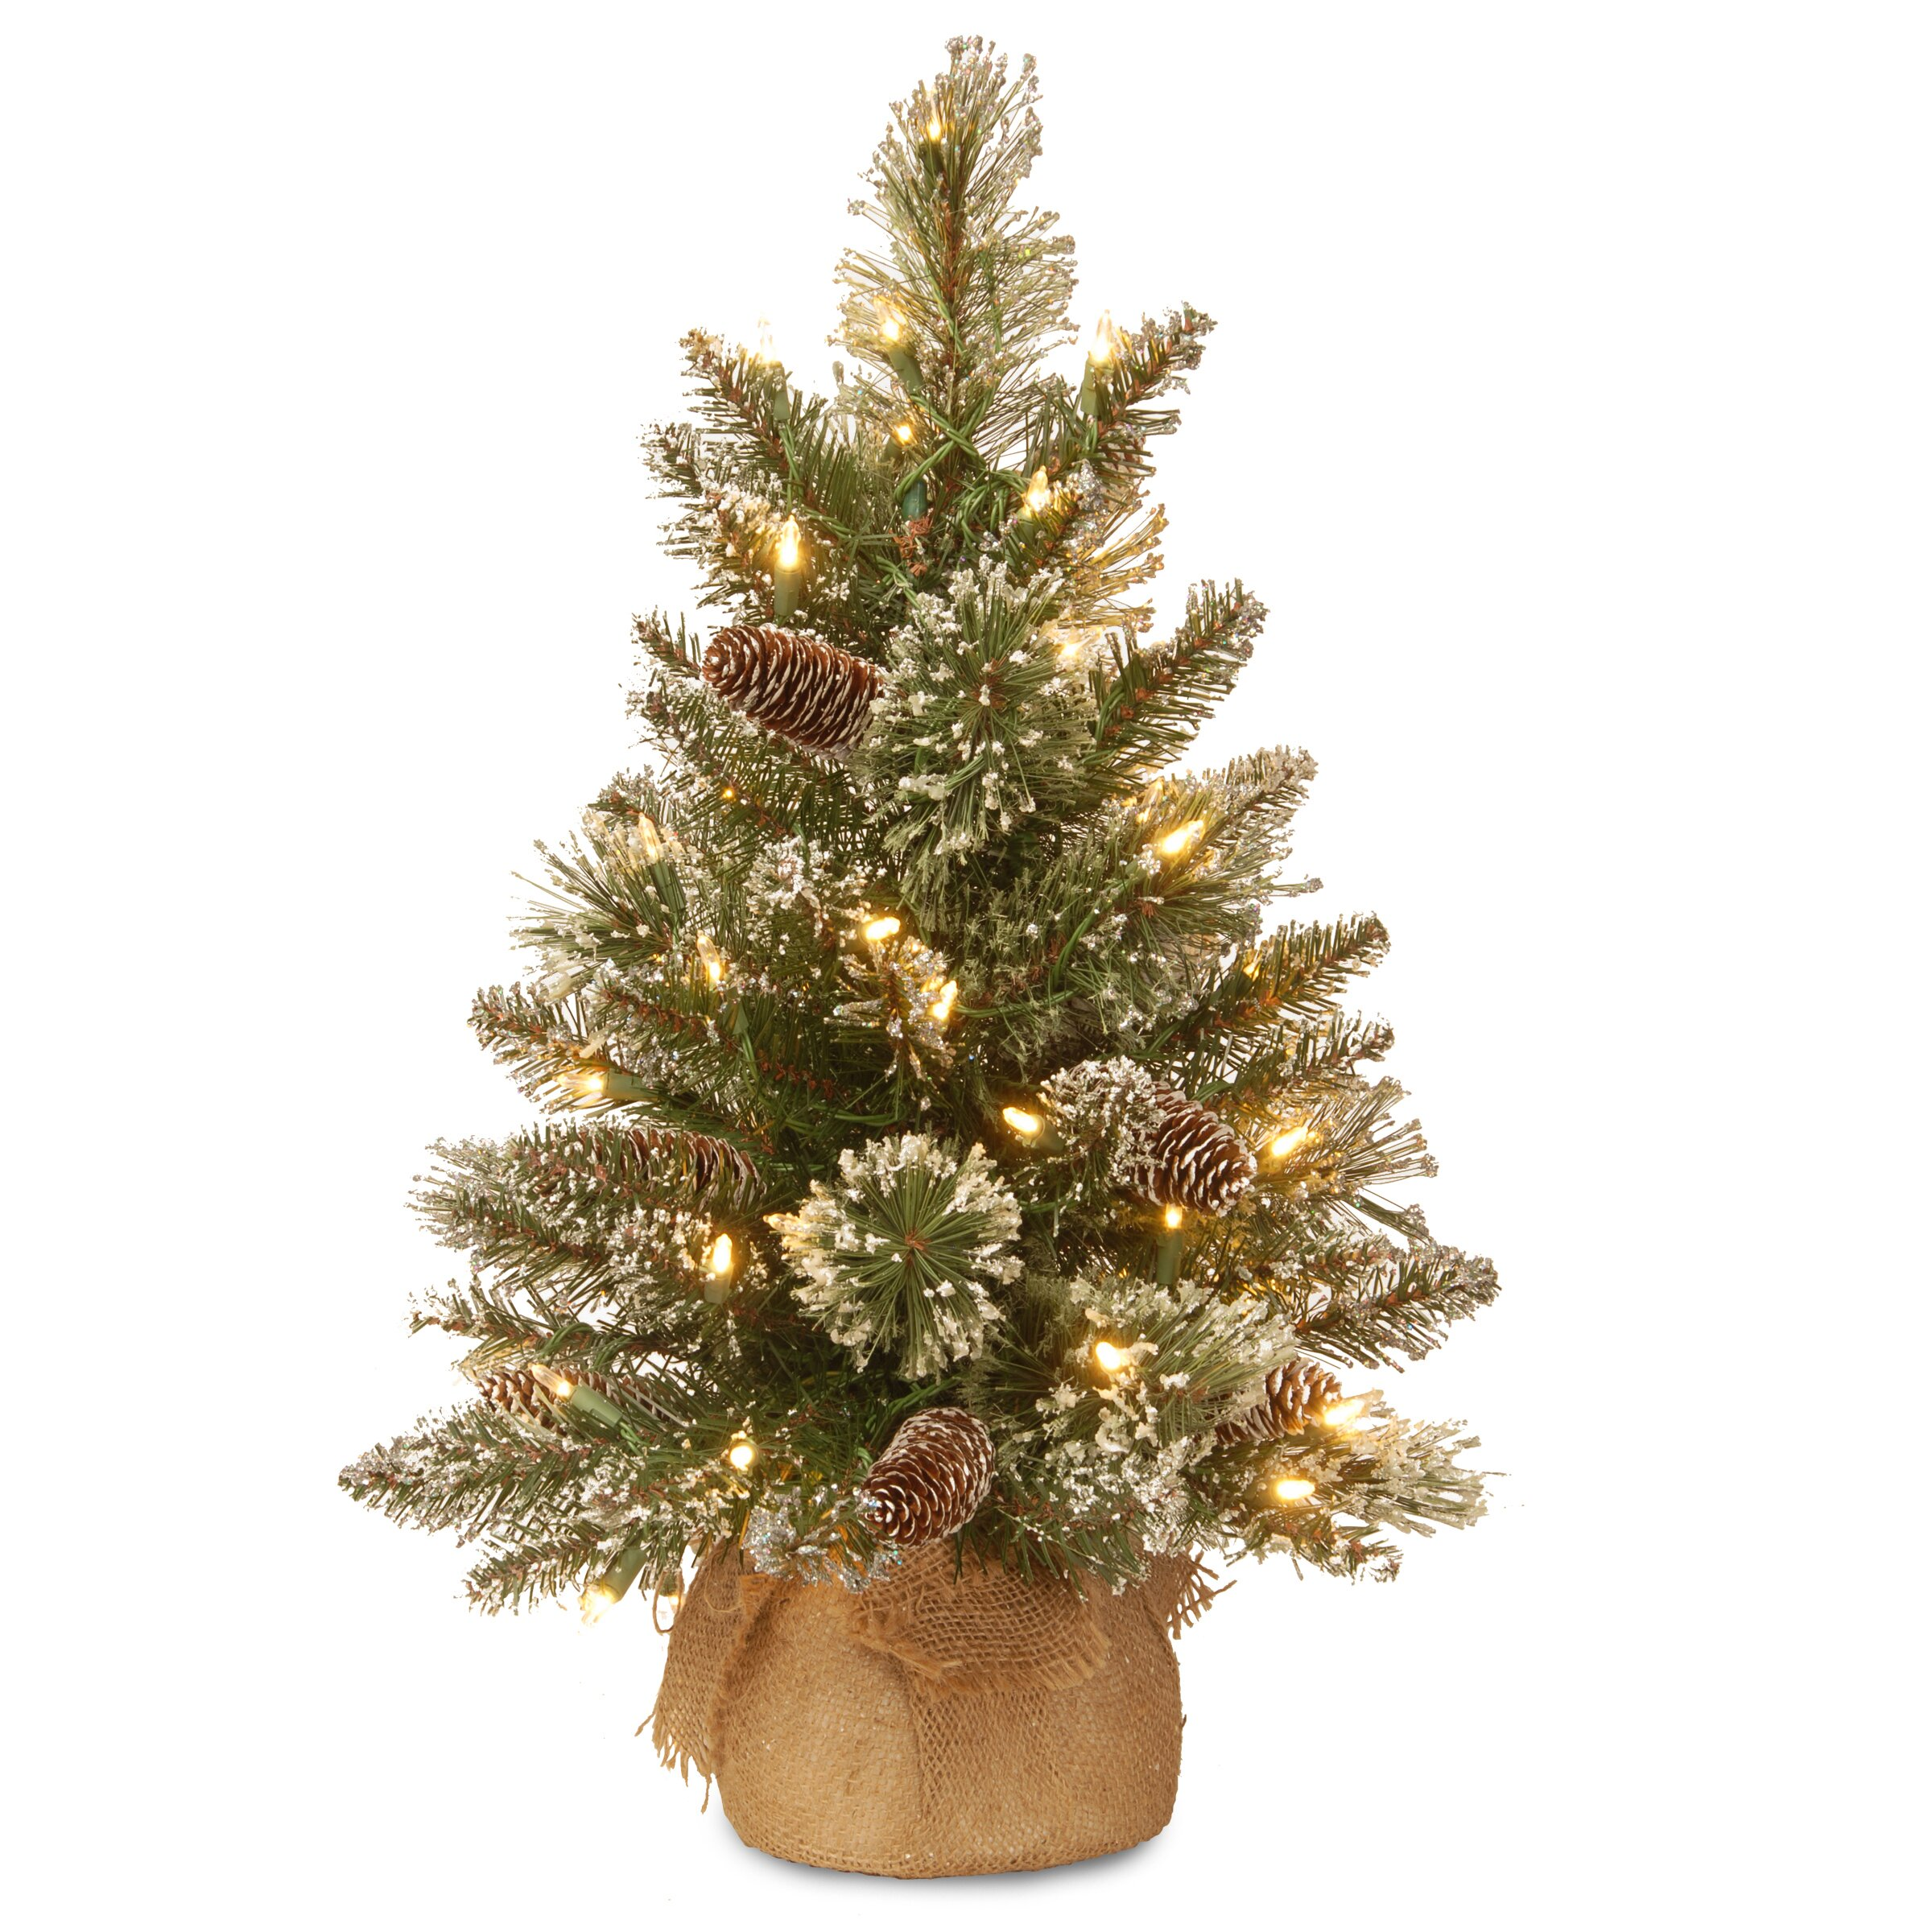 Christmas Tree Company Greytown : National tree co glittery bristle green pine